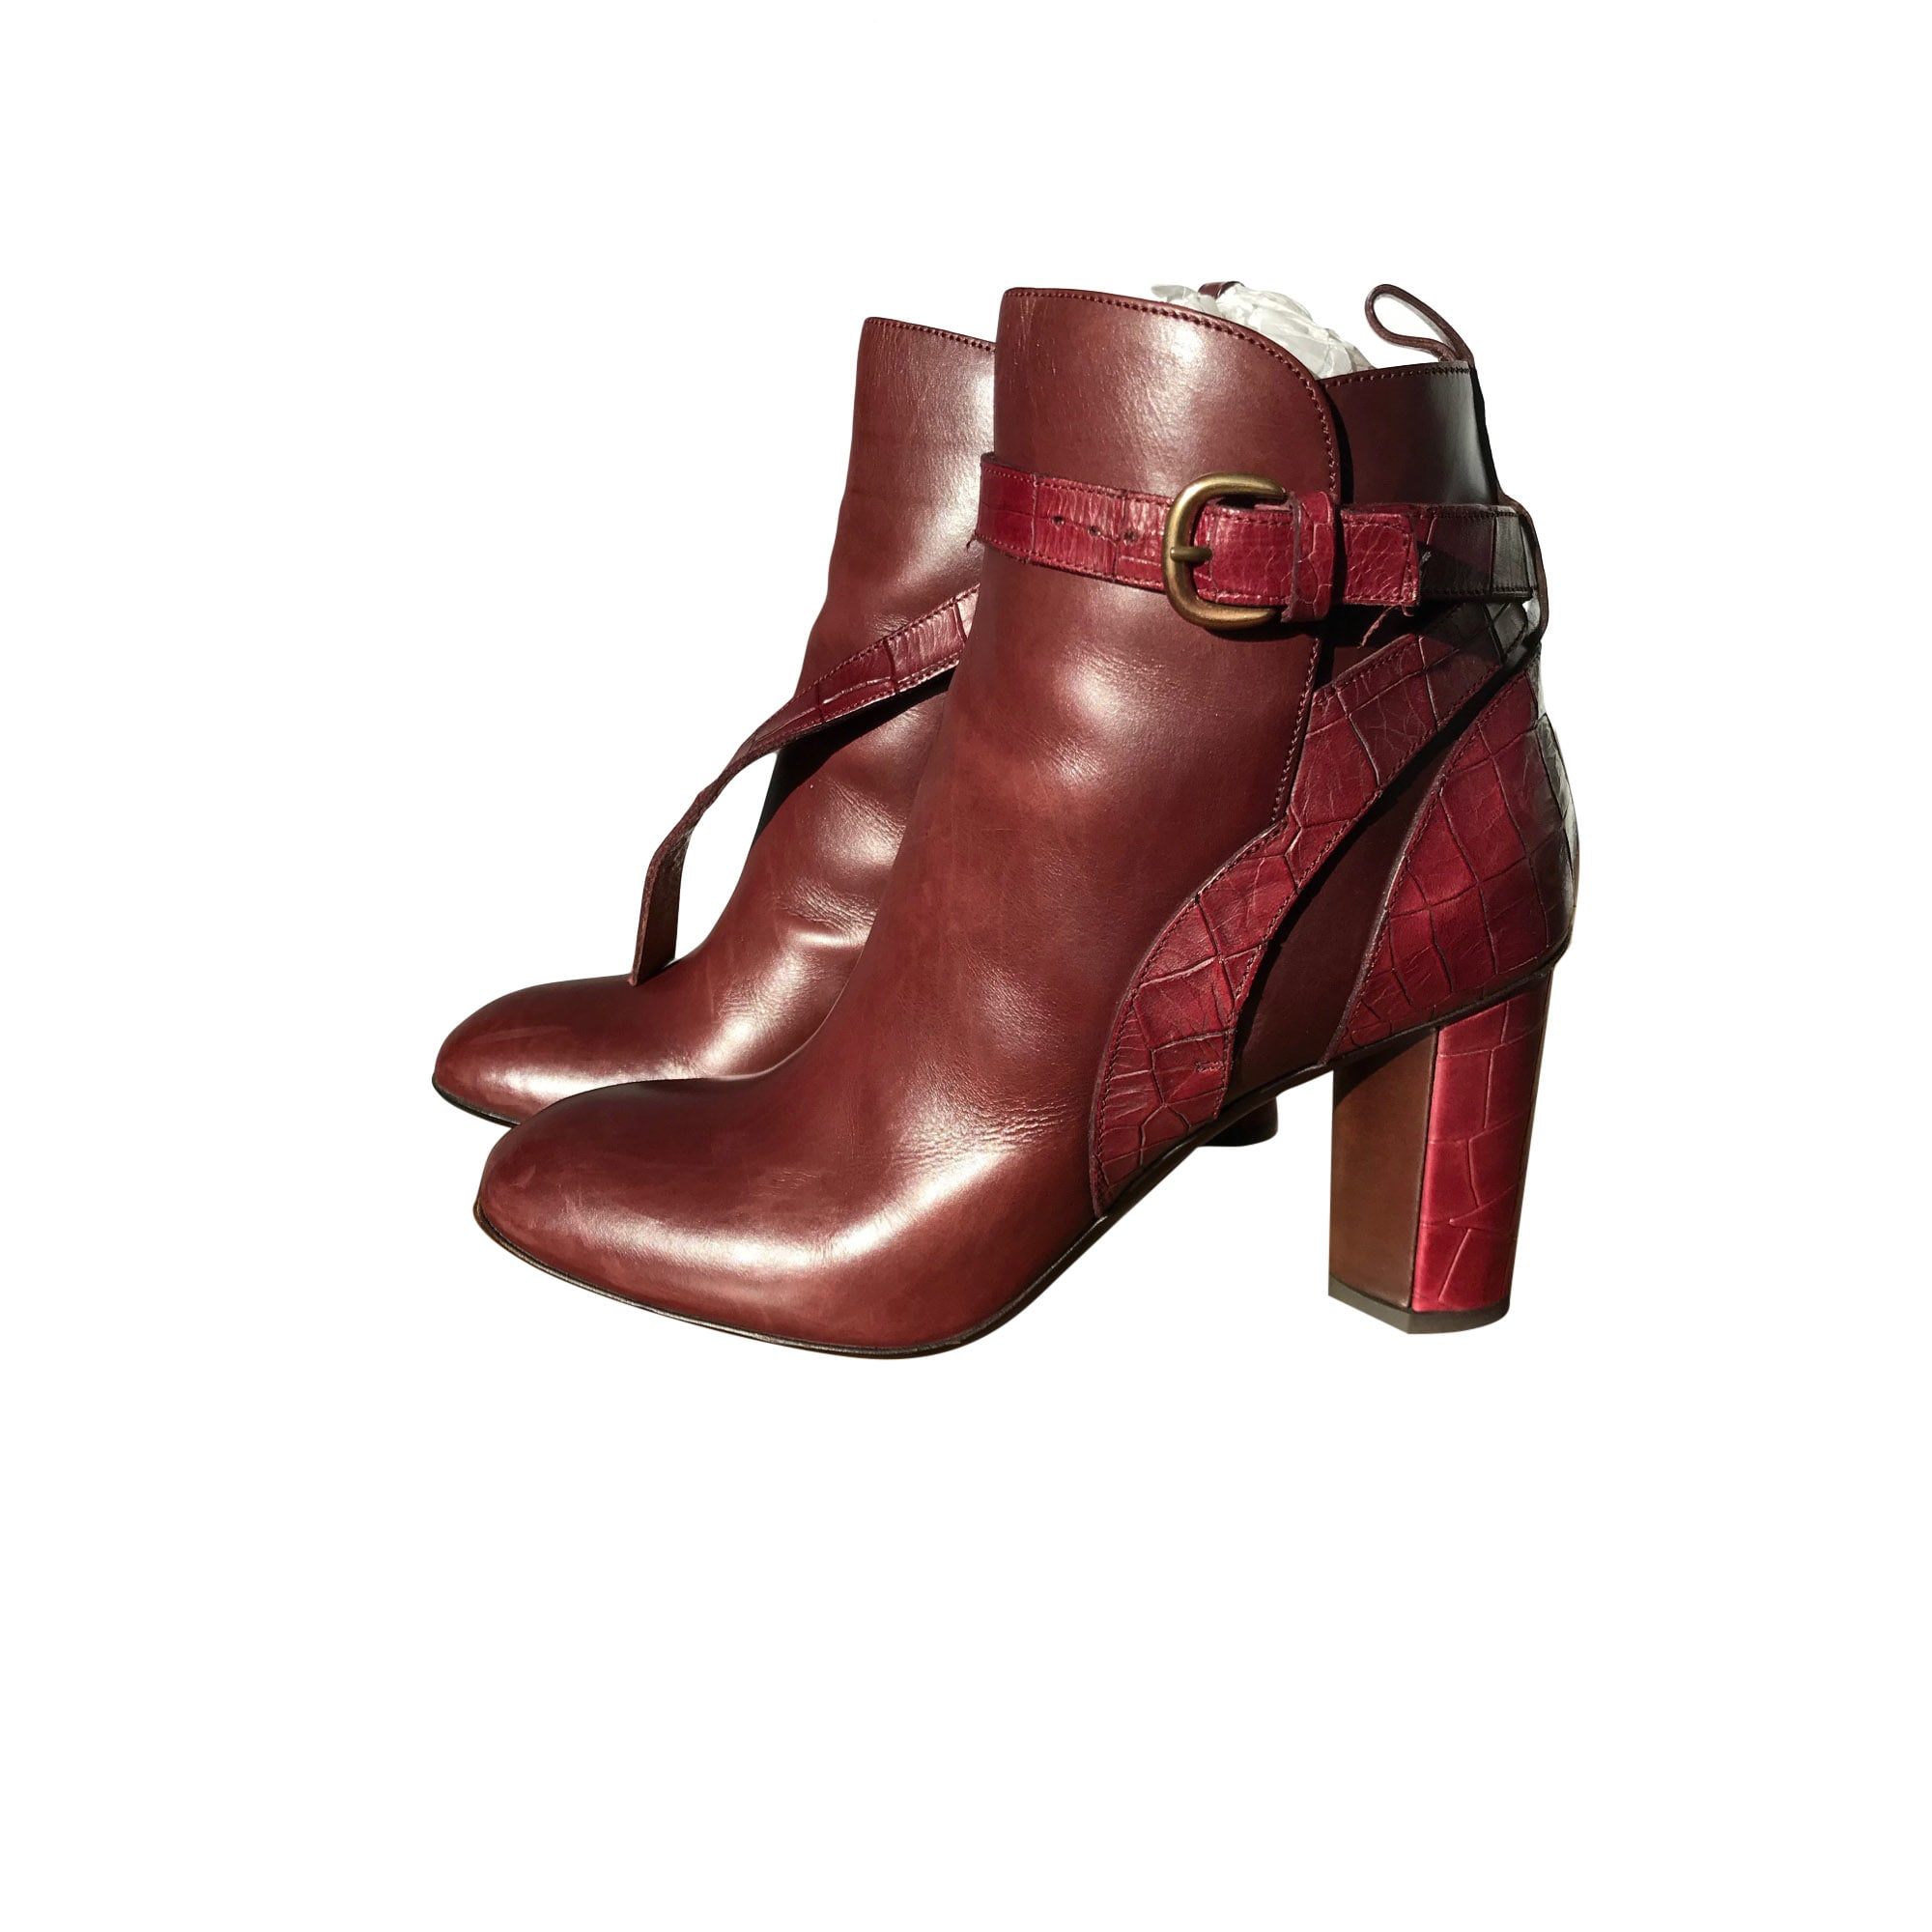 High Heel Ankle Boots SARTORE Red, burgundy